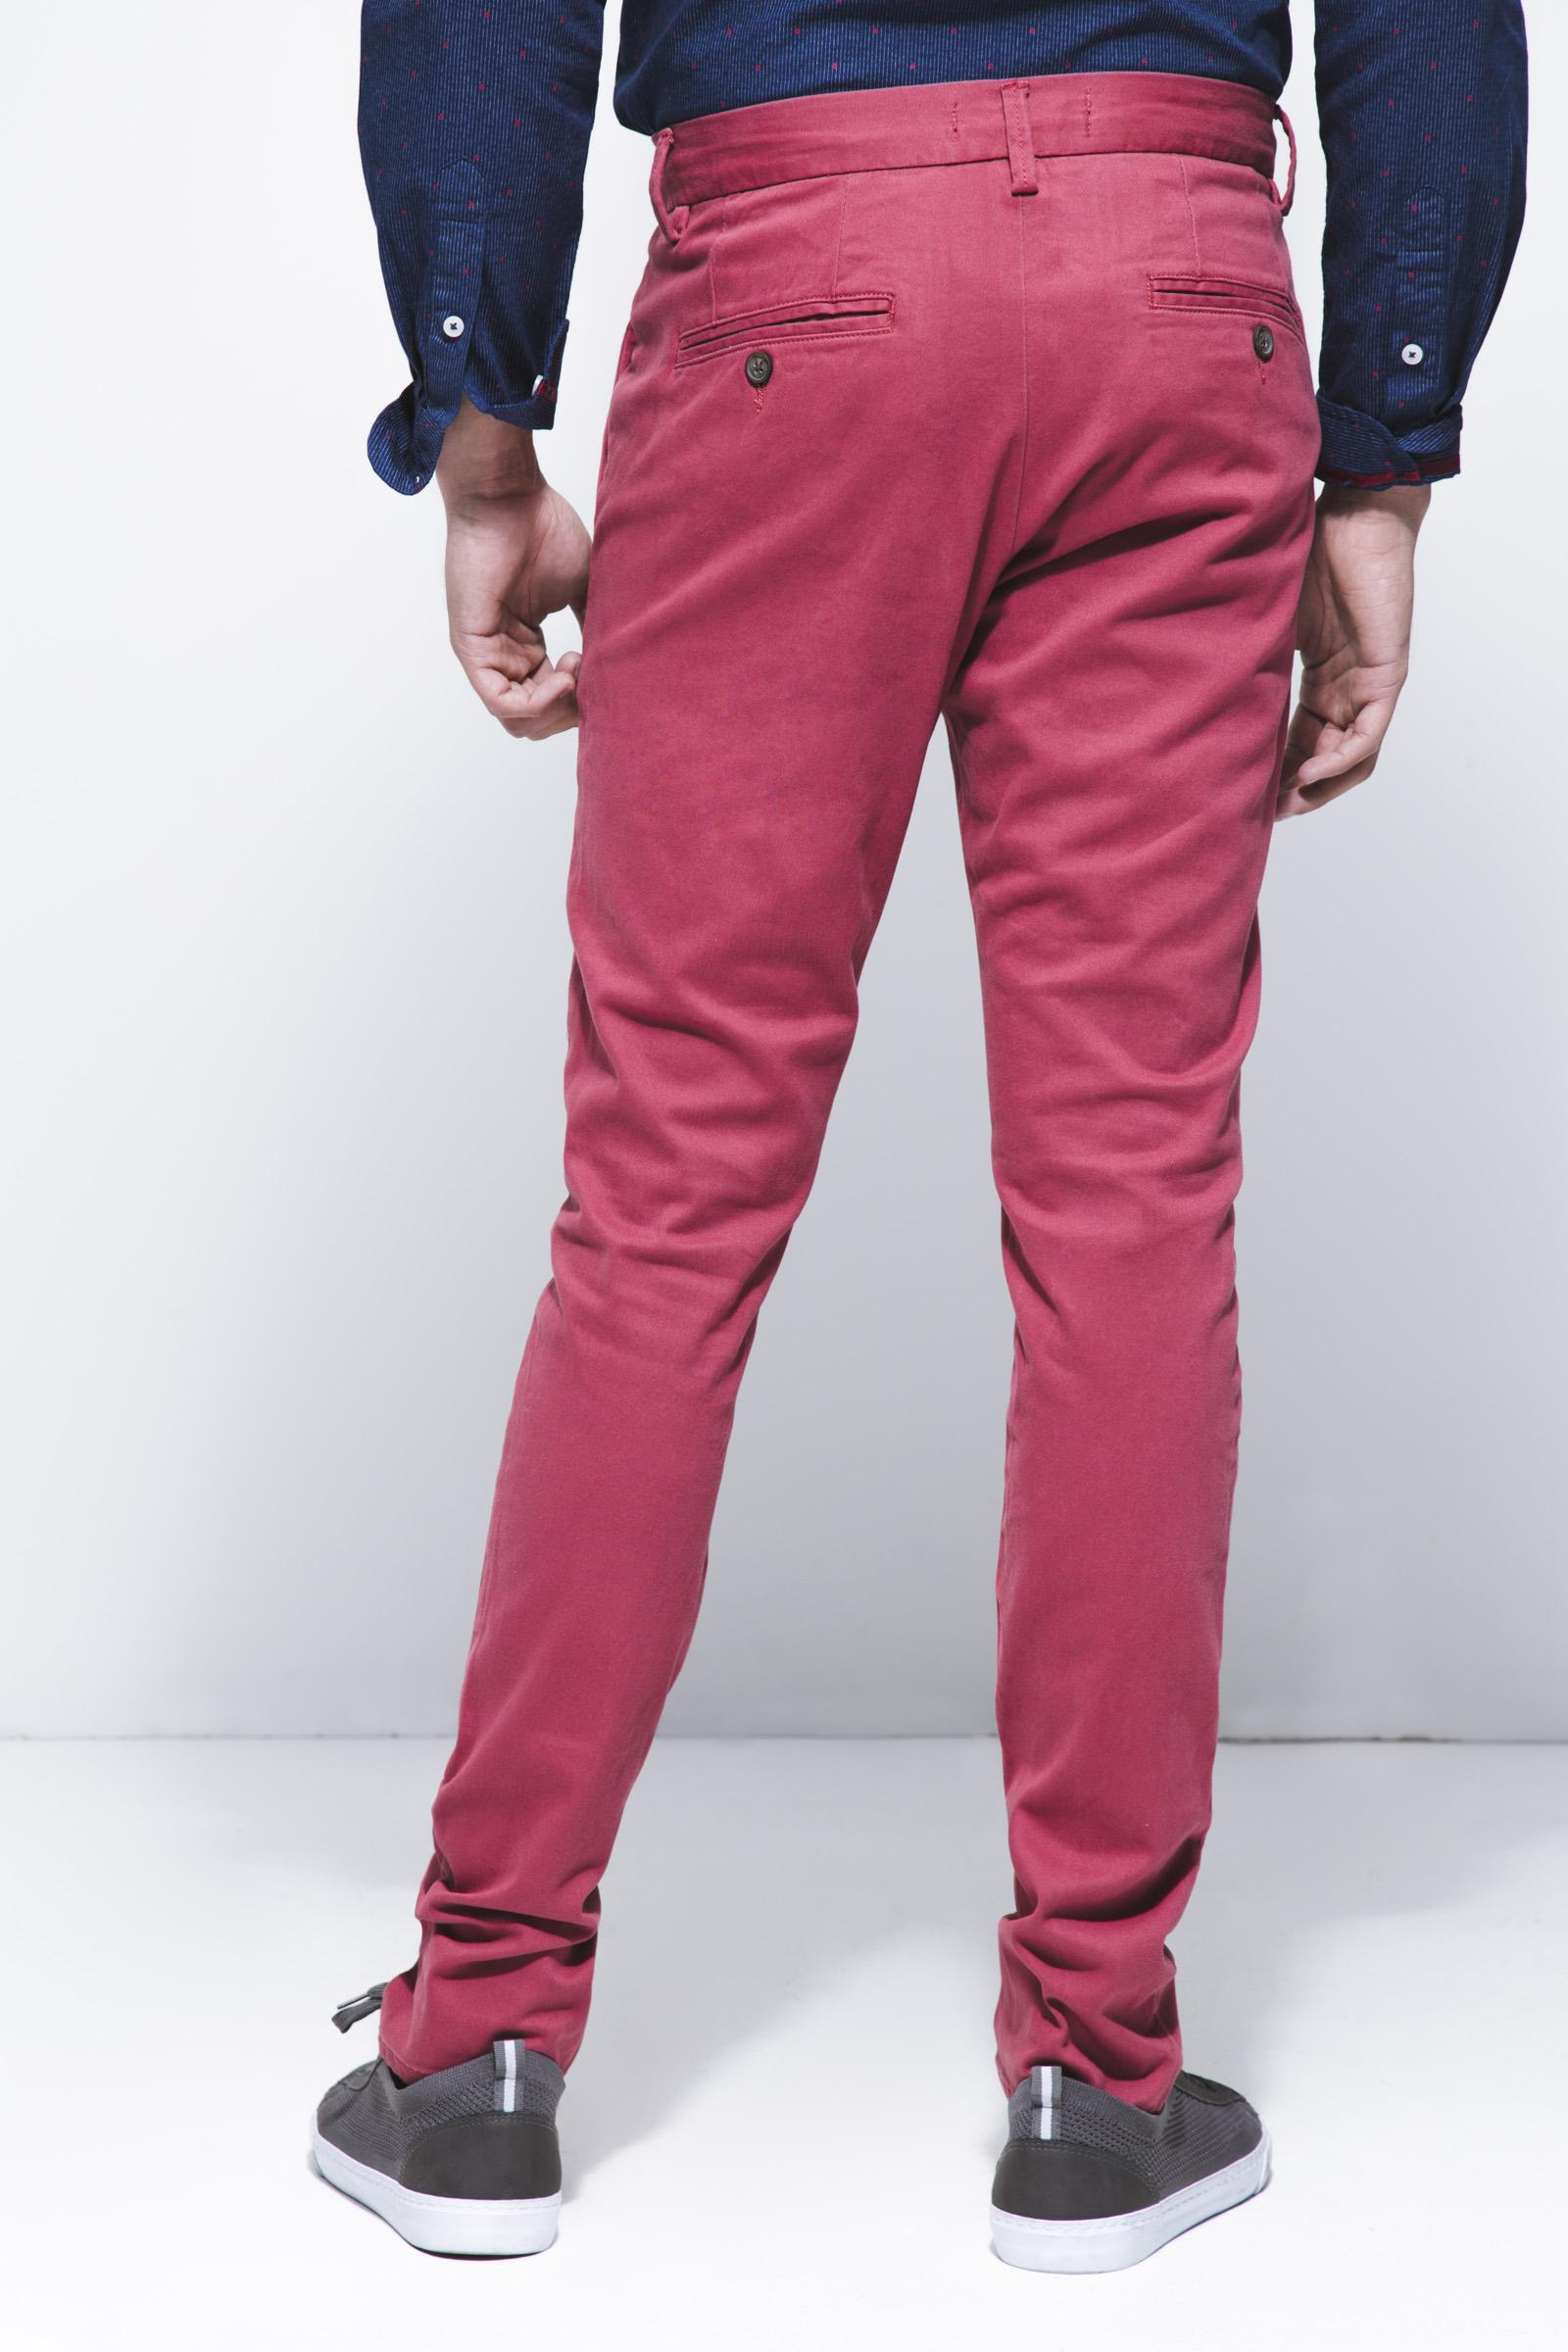 KOAJ-PANTALON KOAJ CHINO 6 SUPER SLIM 1/18